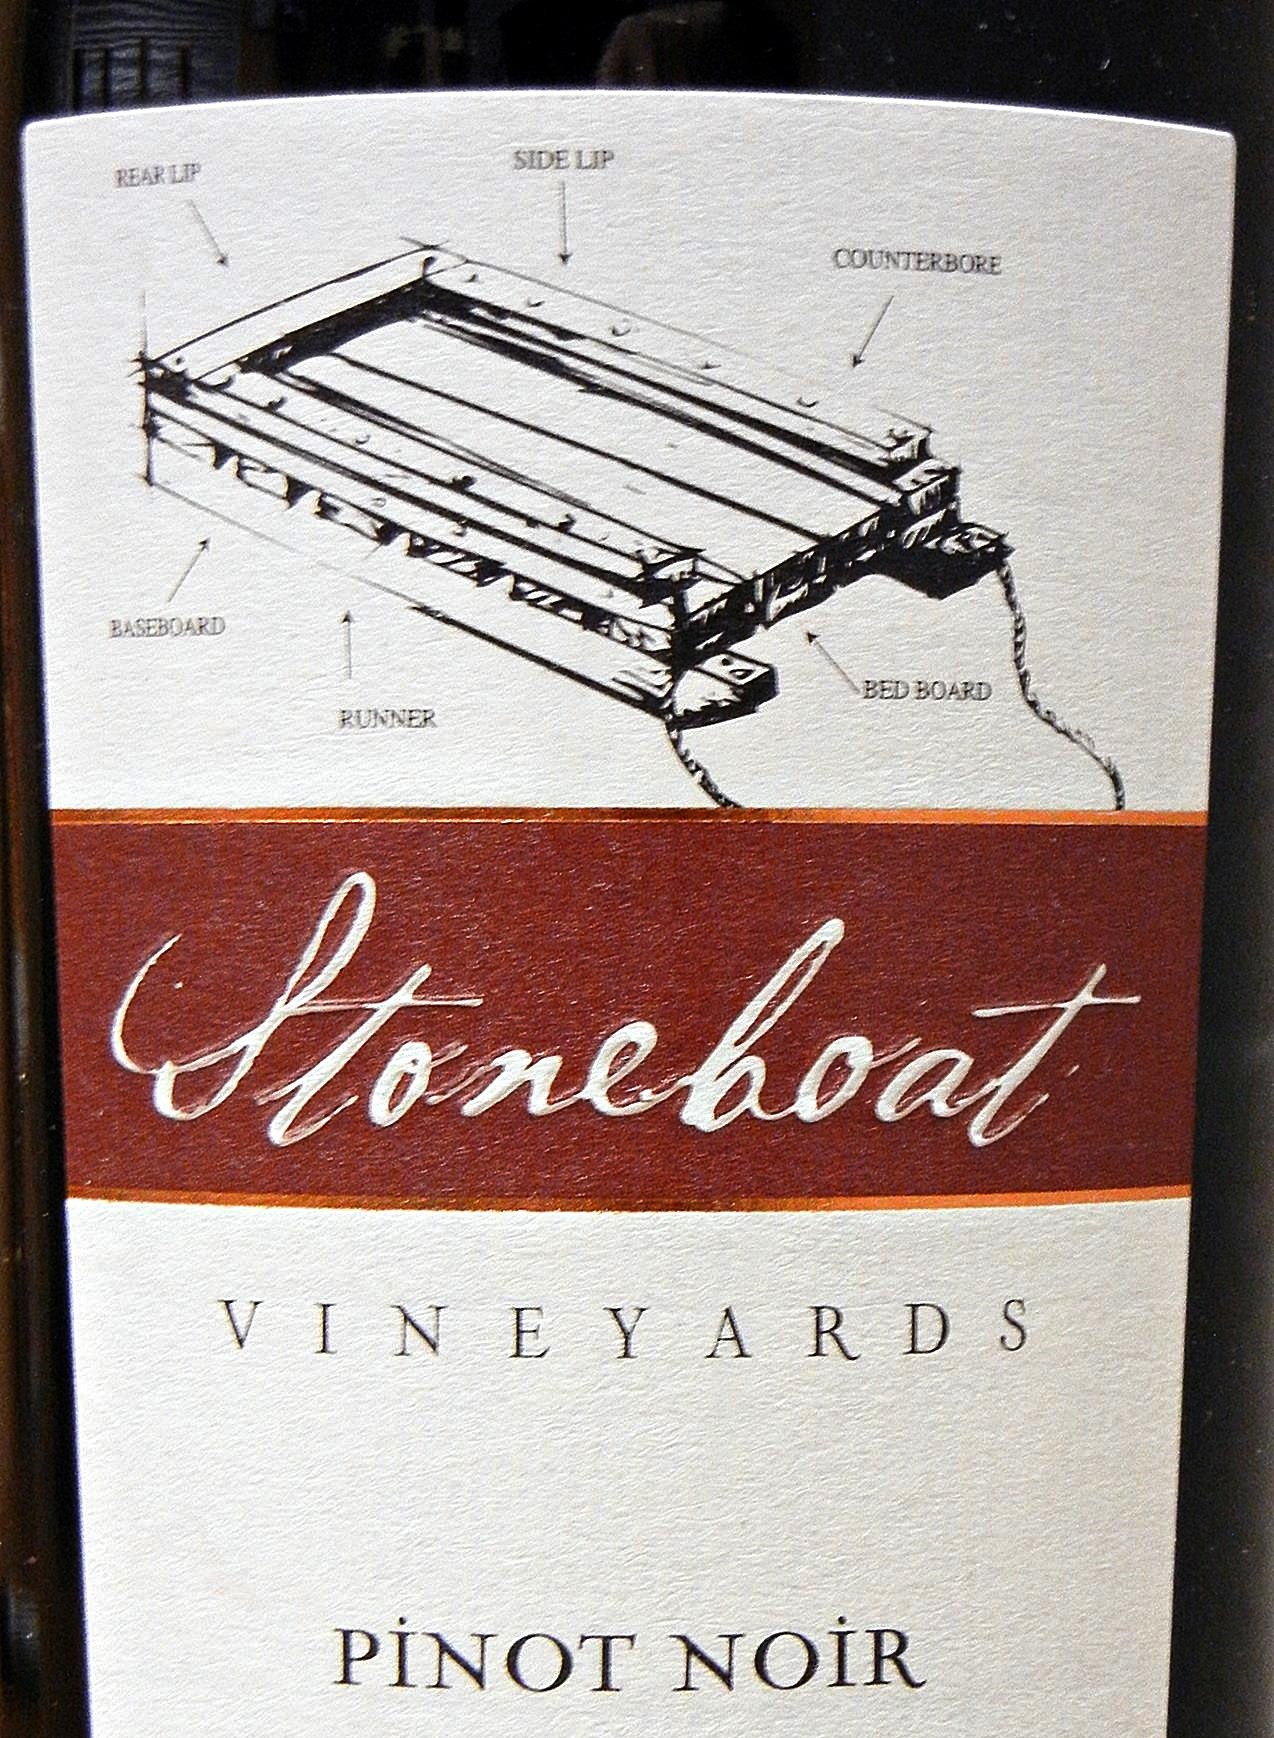 Stoneboat Pinot Noir 2007 Label - BC Pinot Noir Tasting Review 2